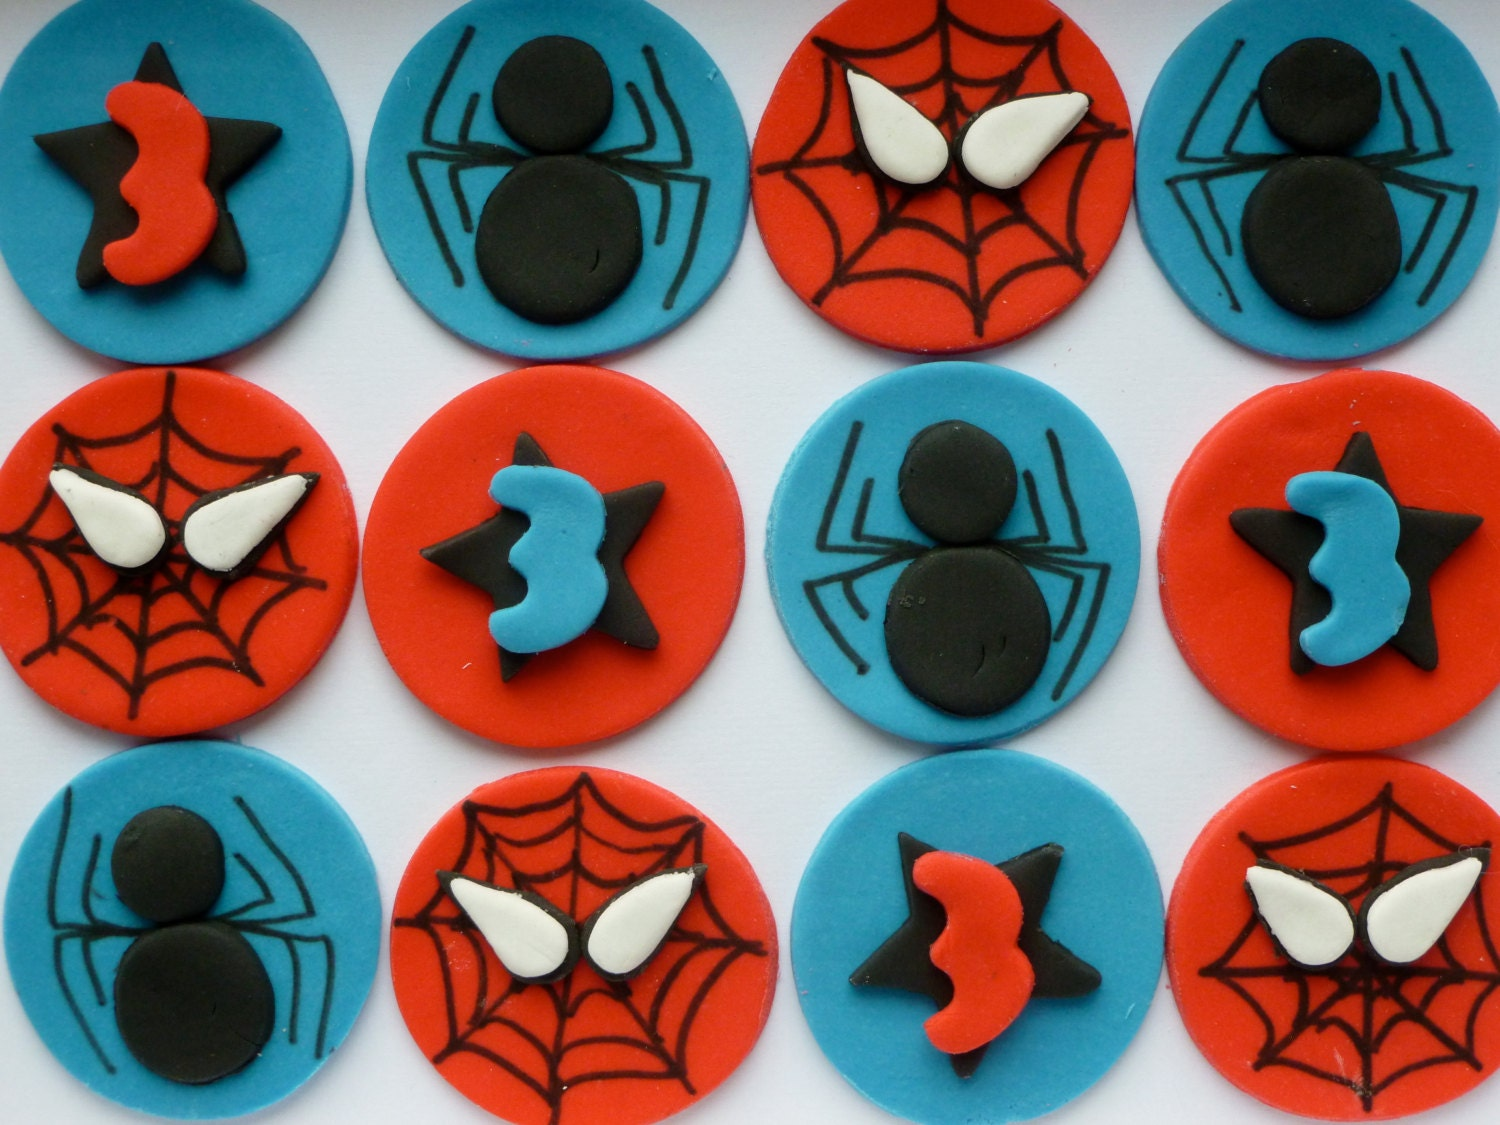 Fondant spiderman cupcake toppers - photo#4